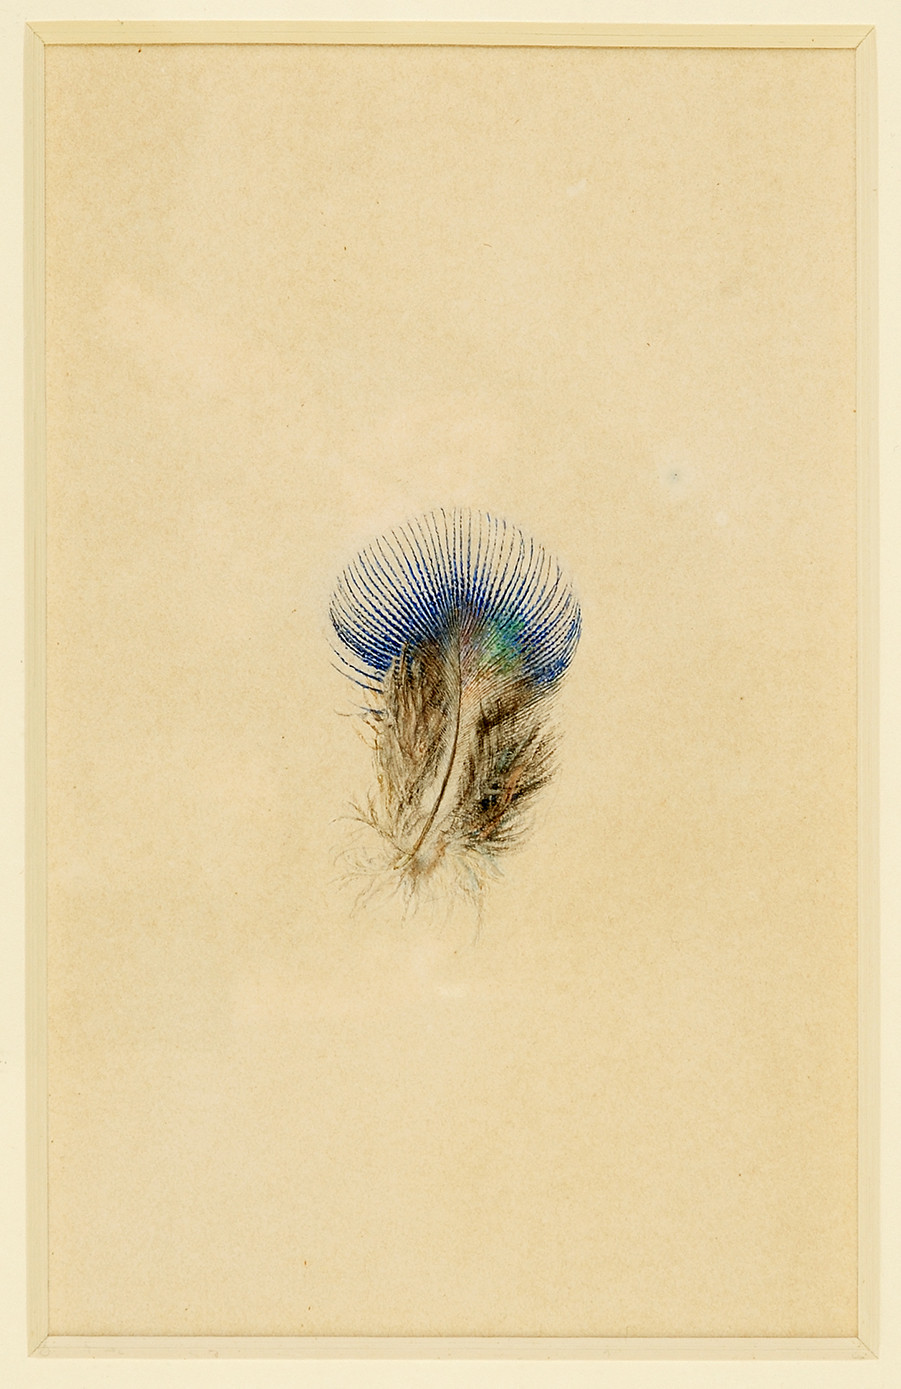 Sketch by John Ruskin of a peacock's feather